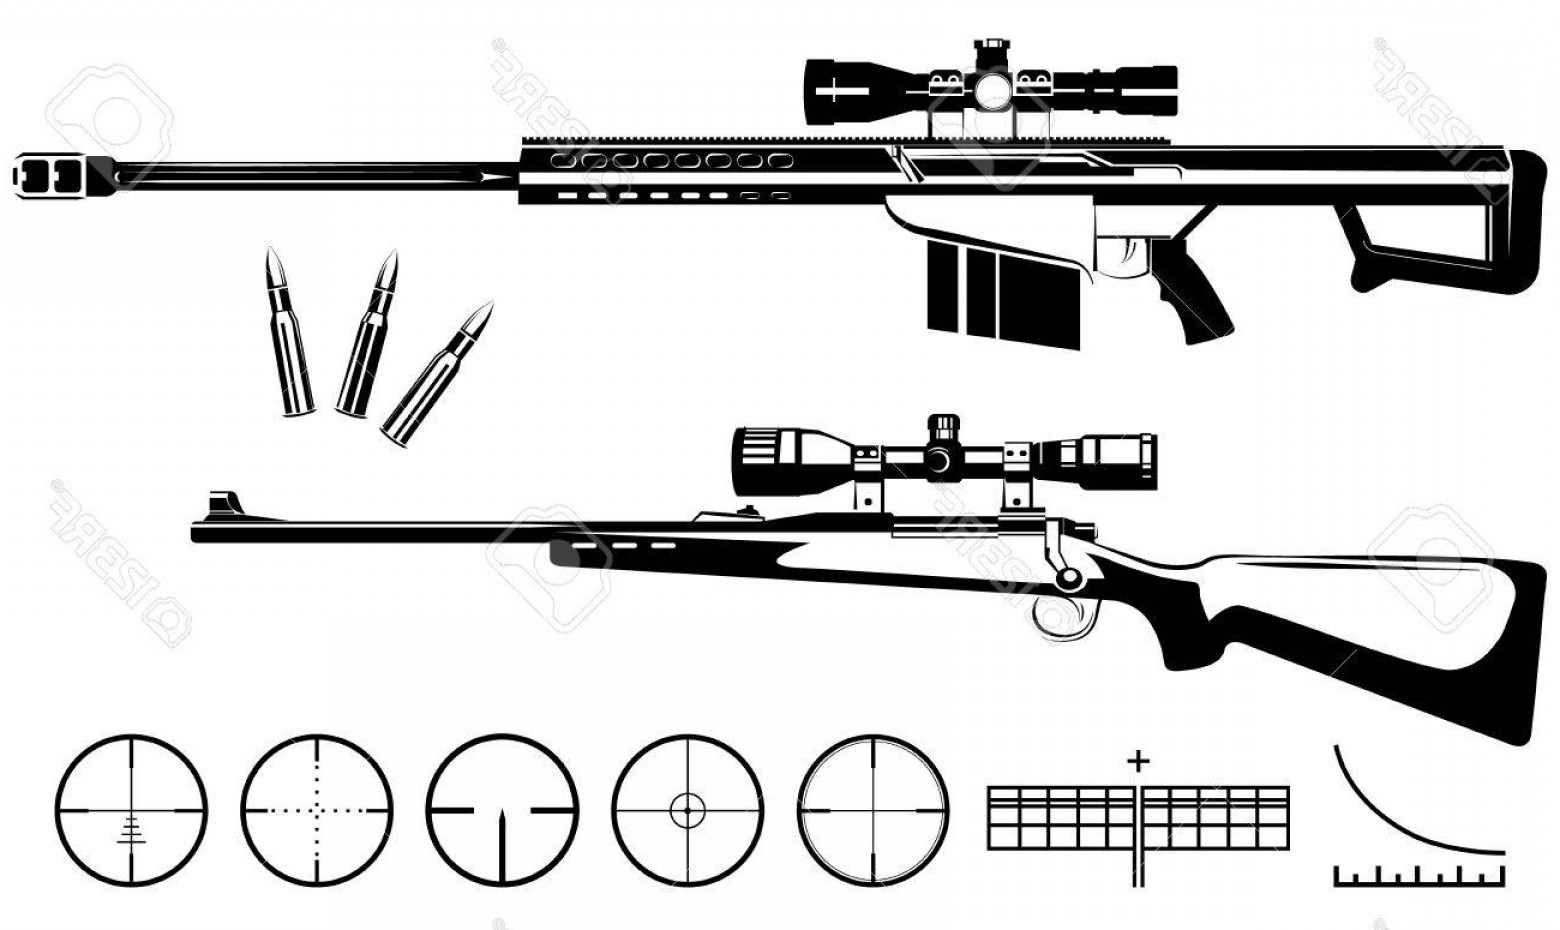 Hunting Rifle Vector Cross: Photostock Vector Vector Sniper Rifles And Target Isolated On White Background